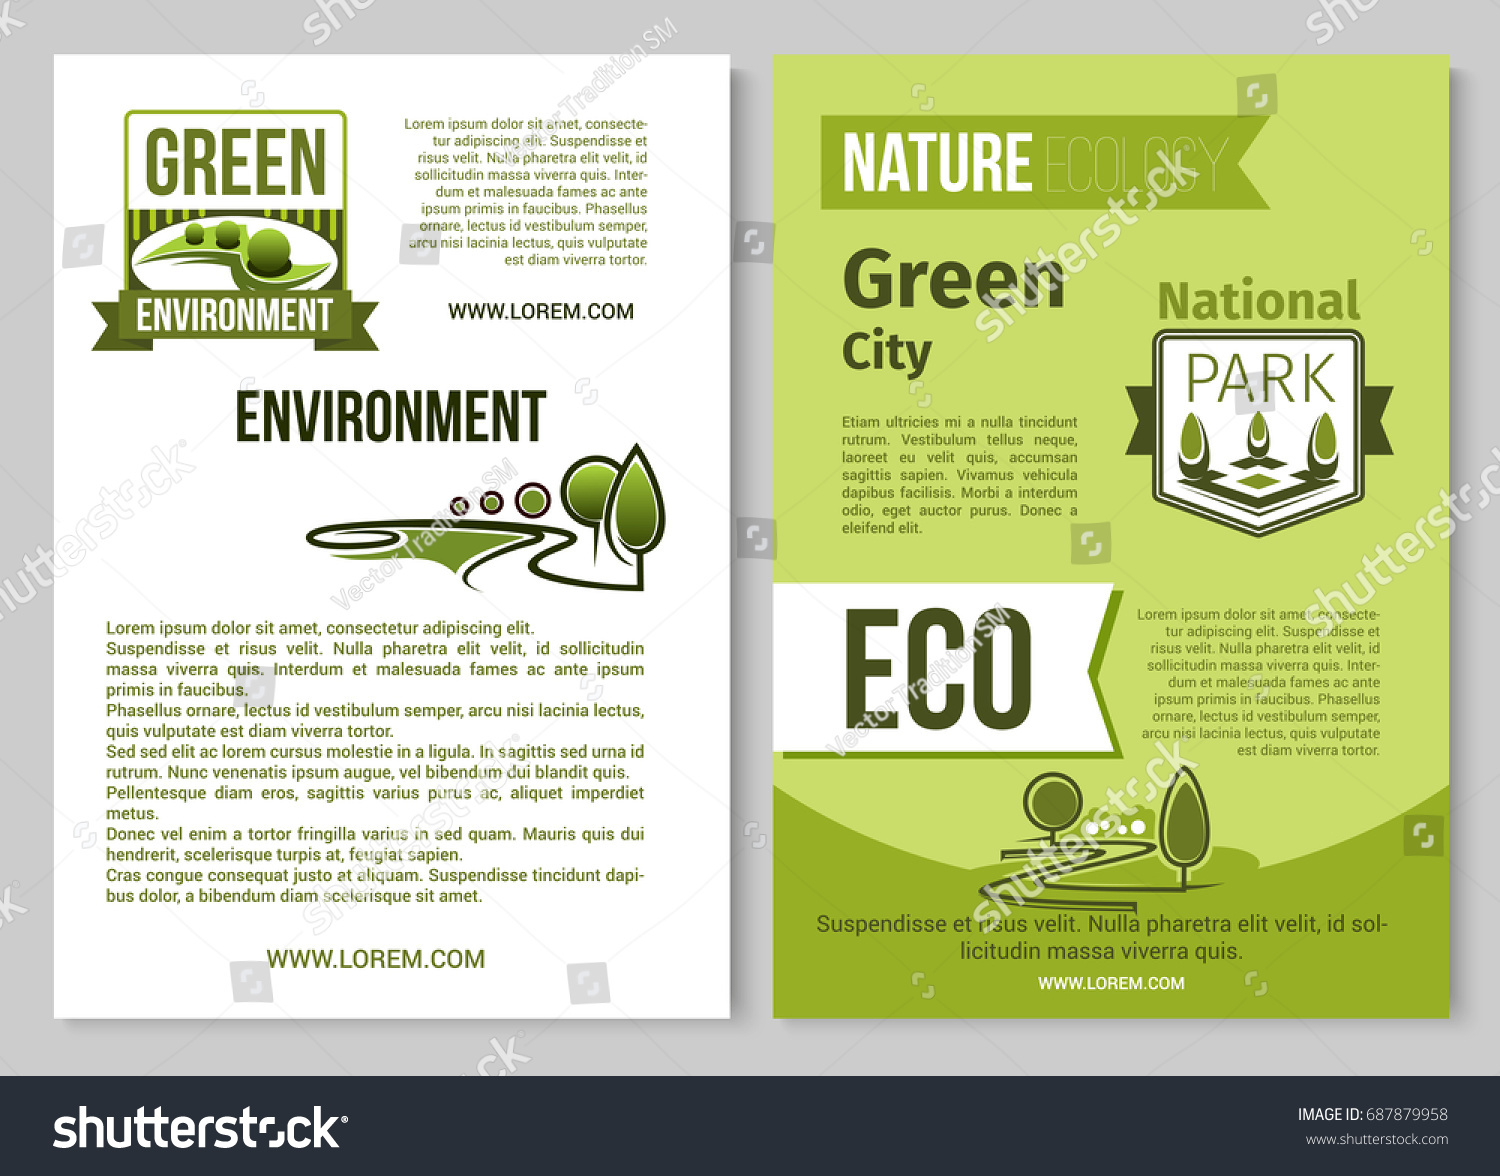 Nature ecology green environment posters brochure stock for Environment brochure template